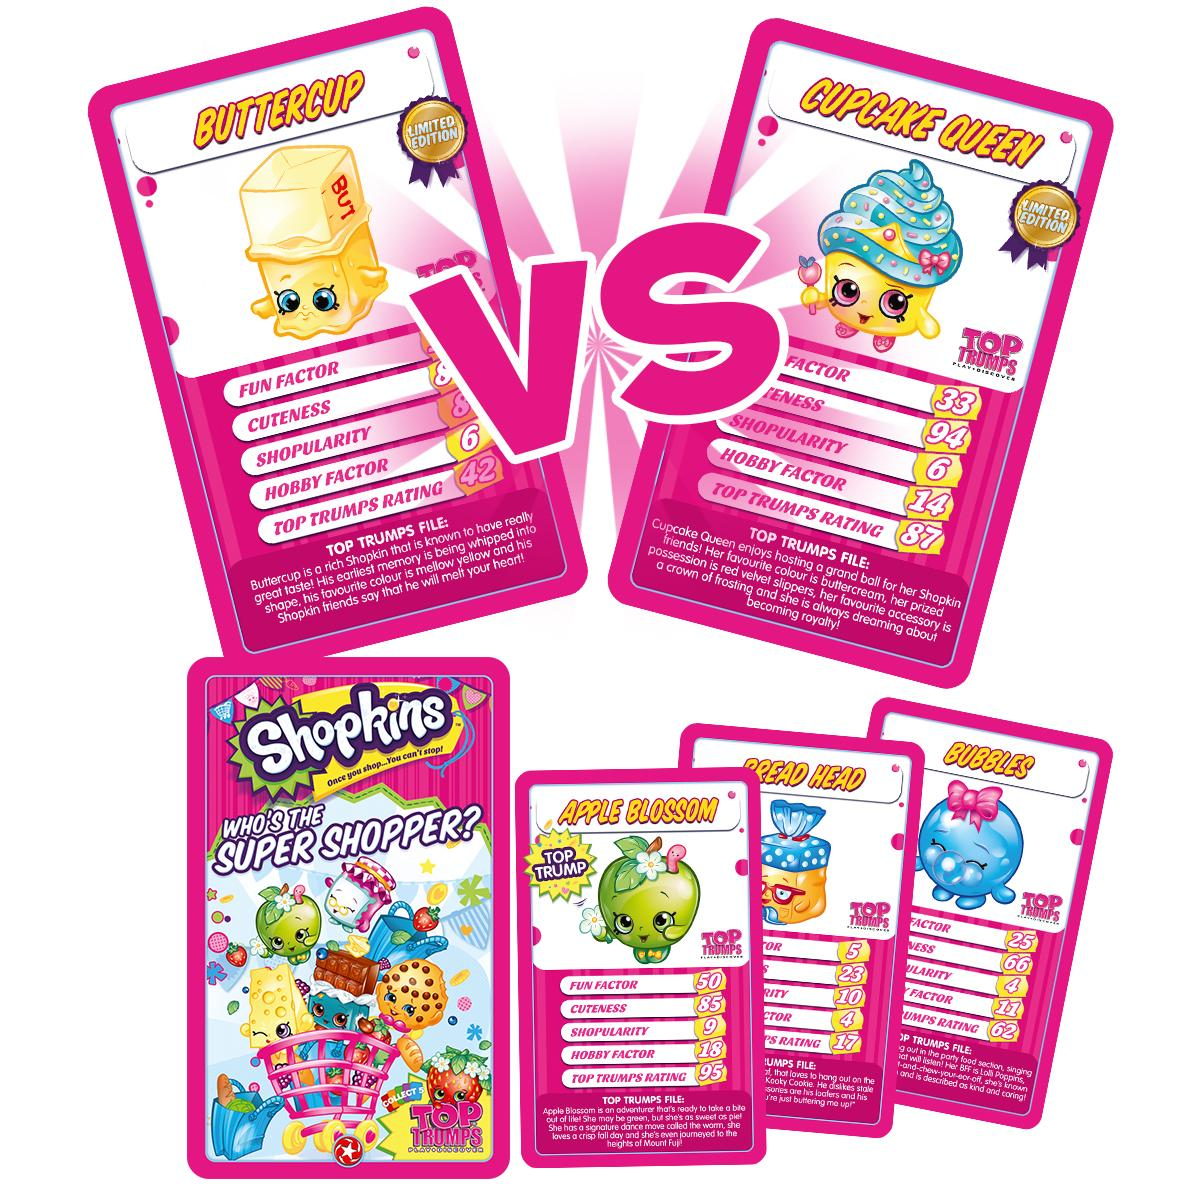 Shopkins Top Trumps Card Game: Amazon.co.uk: Toys & Games